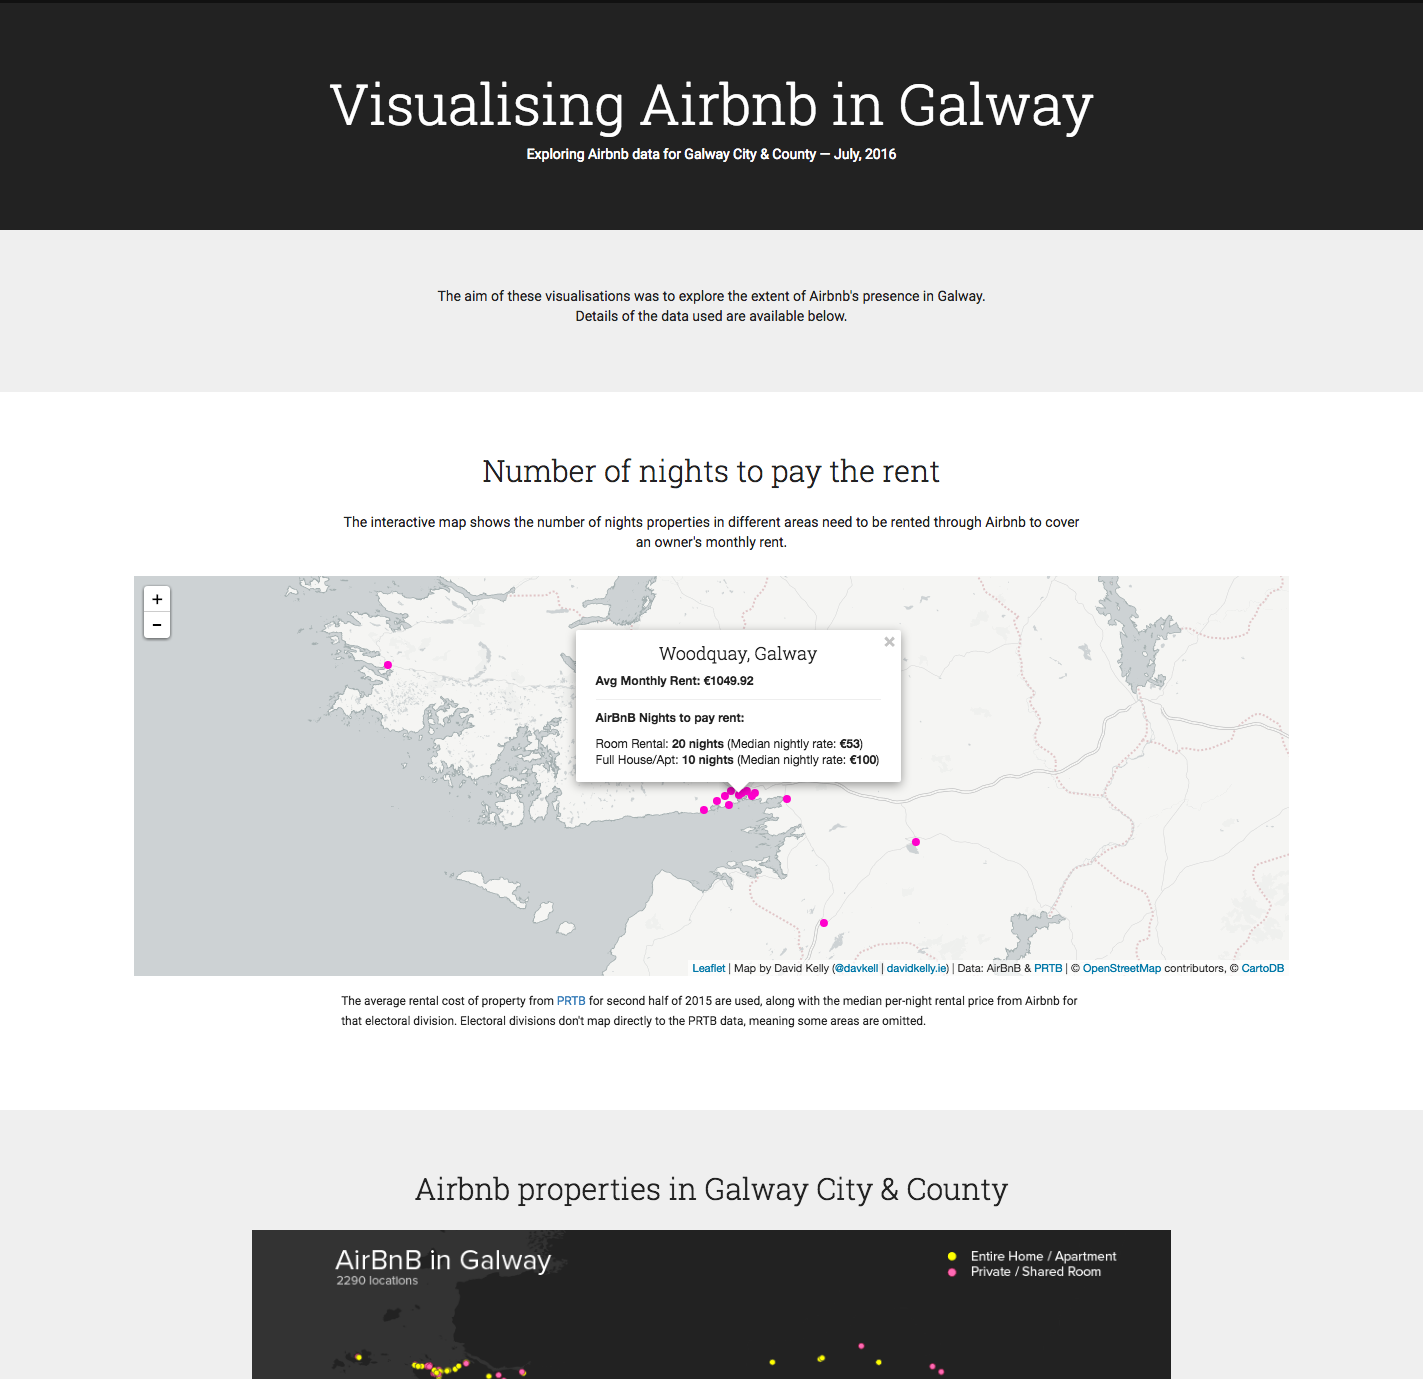 Airbnb in Galway